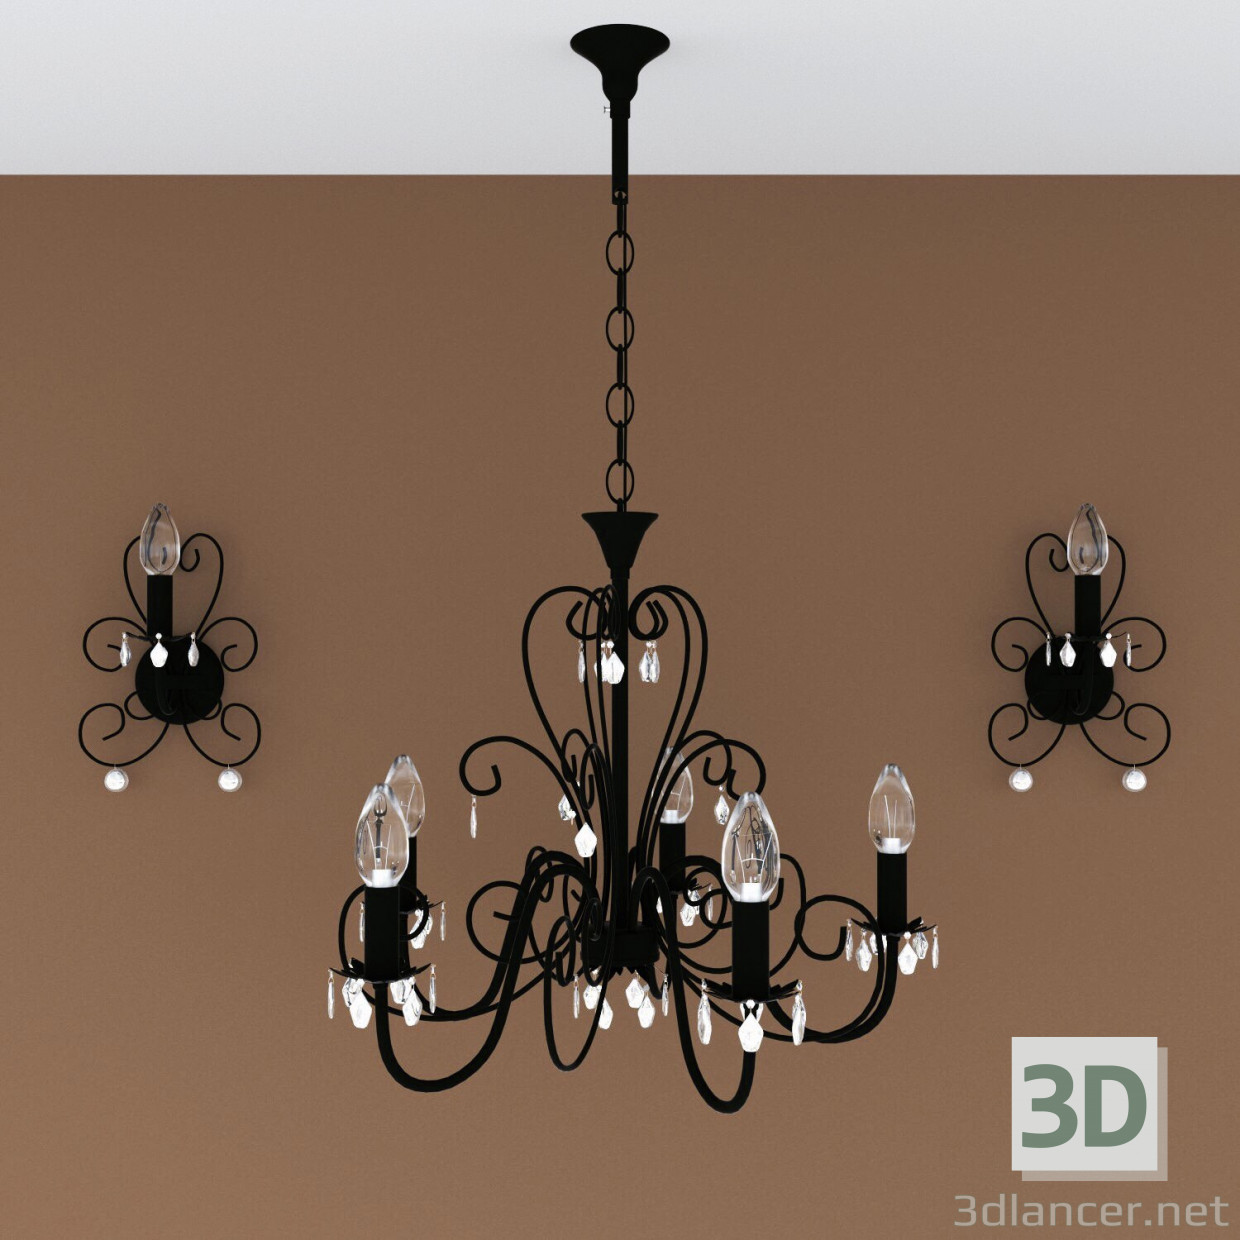 3d model chandelier lamp download to 3dlancer 3d model chandelier lamp aloadofball Image collections